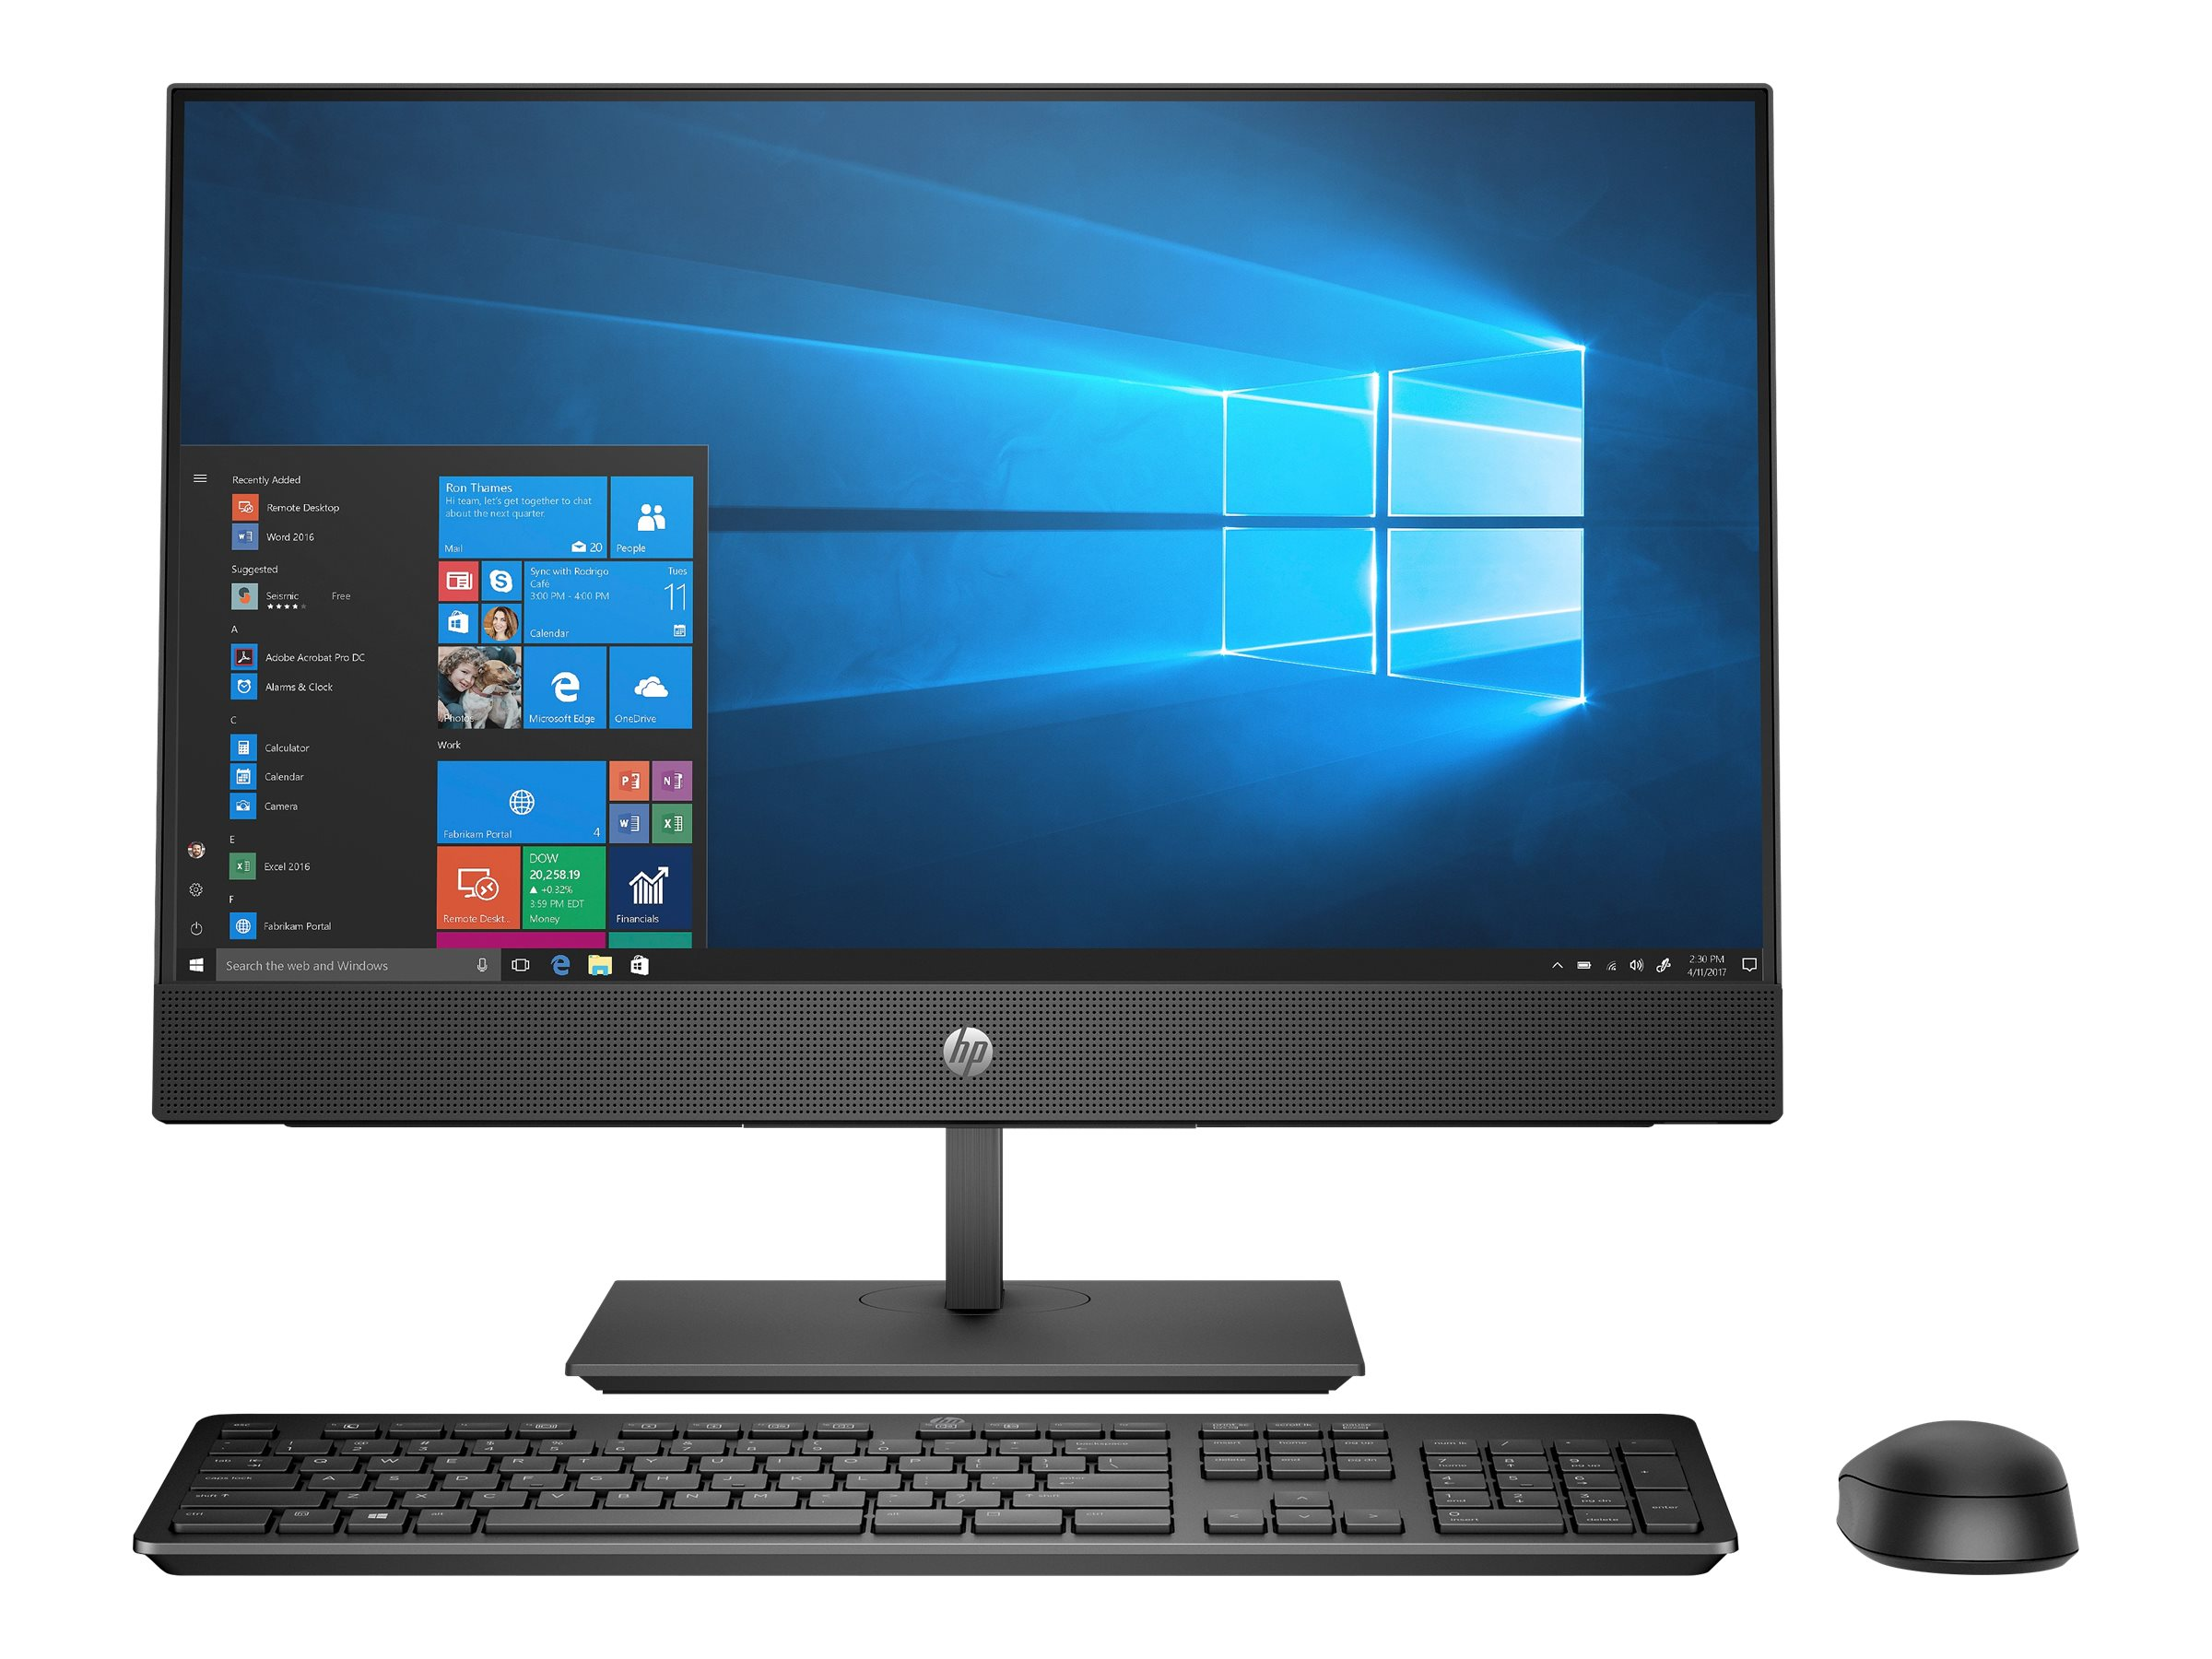 Hp proone 440 g4 all in one komplettloesung 1 x core i5 8500t 2 1 ghz ram 16 gb ssd 512 gb nvme 9319967 4hs10ea abd